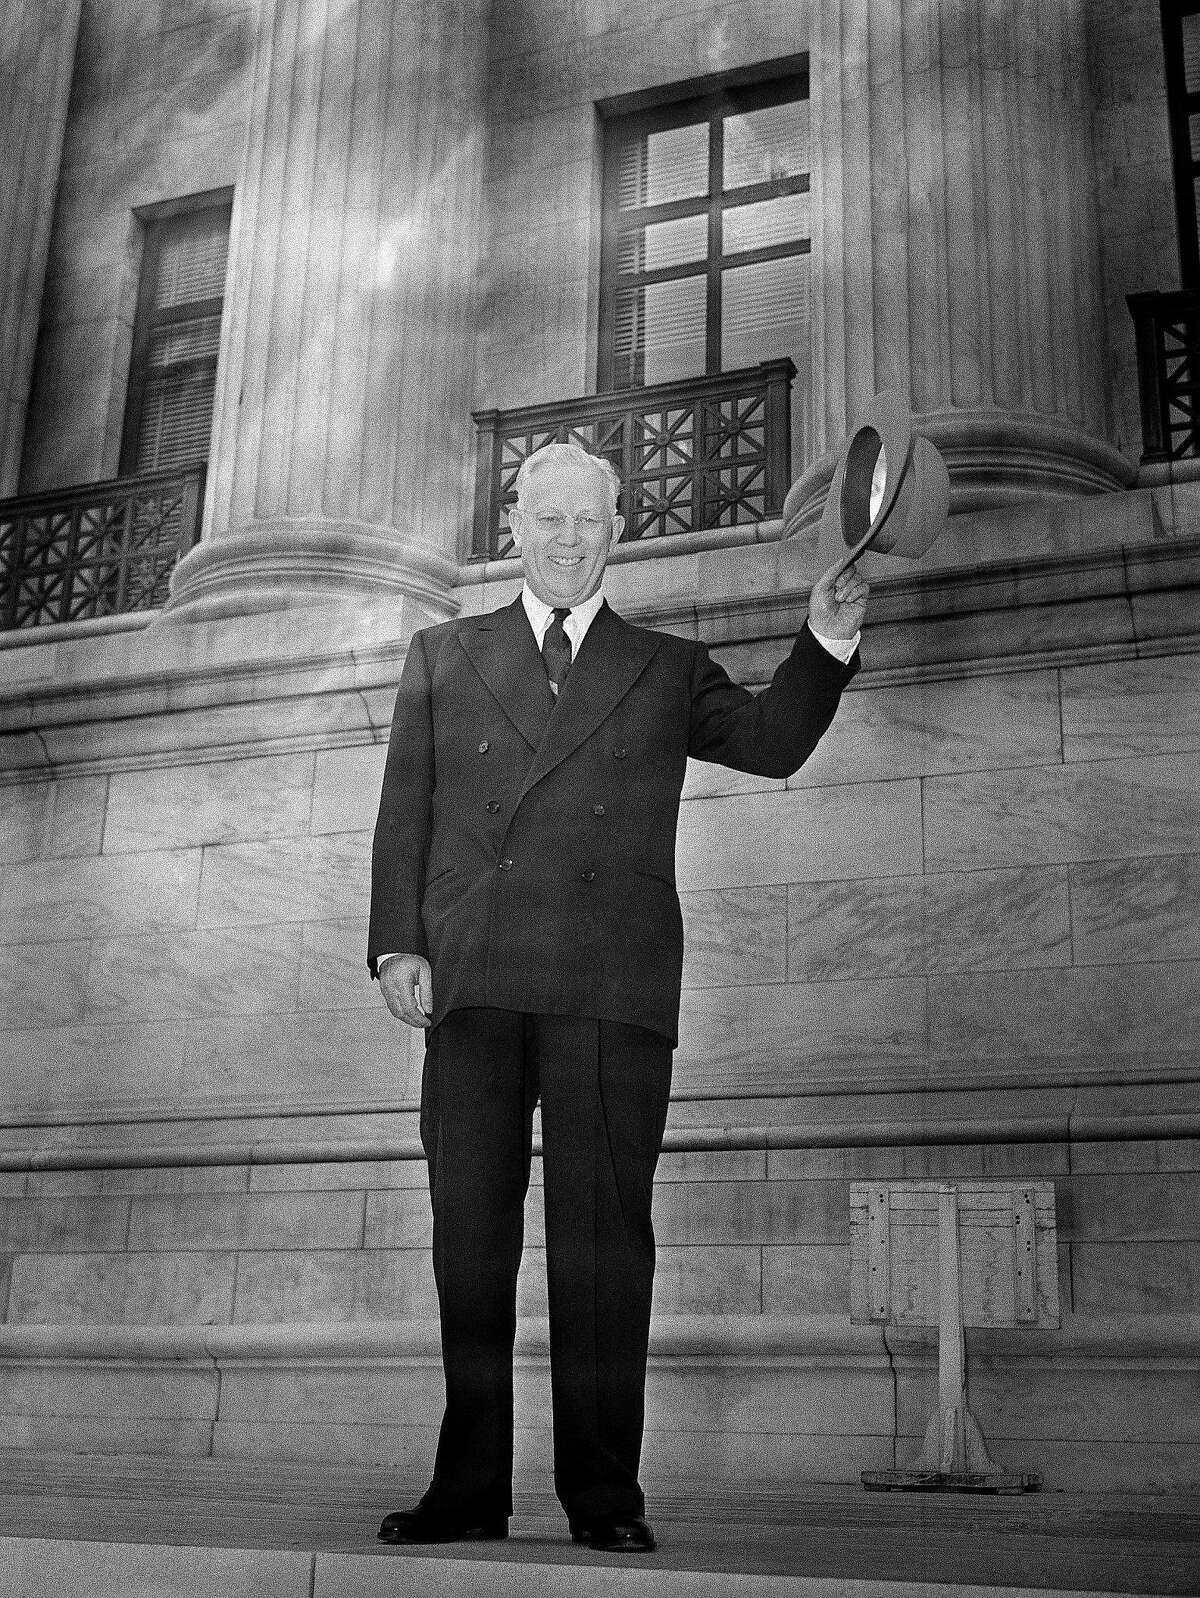 Earl Warren smiles and waves while standing at the base of the two pillars of the Supreme Court building in Washington, D.C., Oct. 5, 1953 after arriving to become the 14th Chief Justice of the United States. (AP Photo/Henry Griffin)